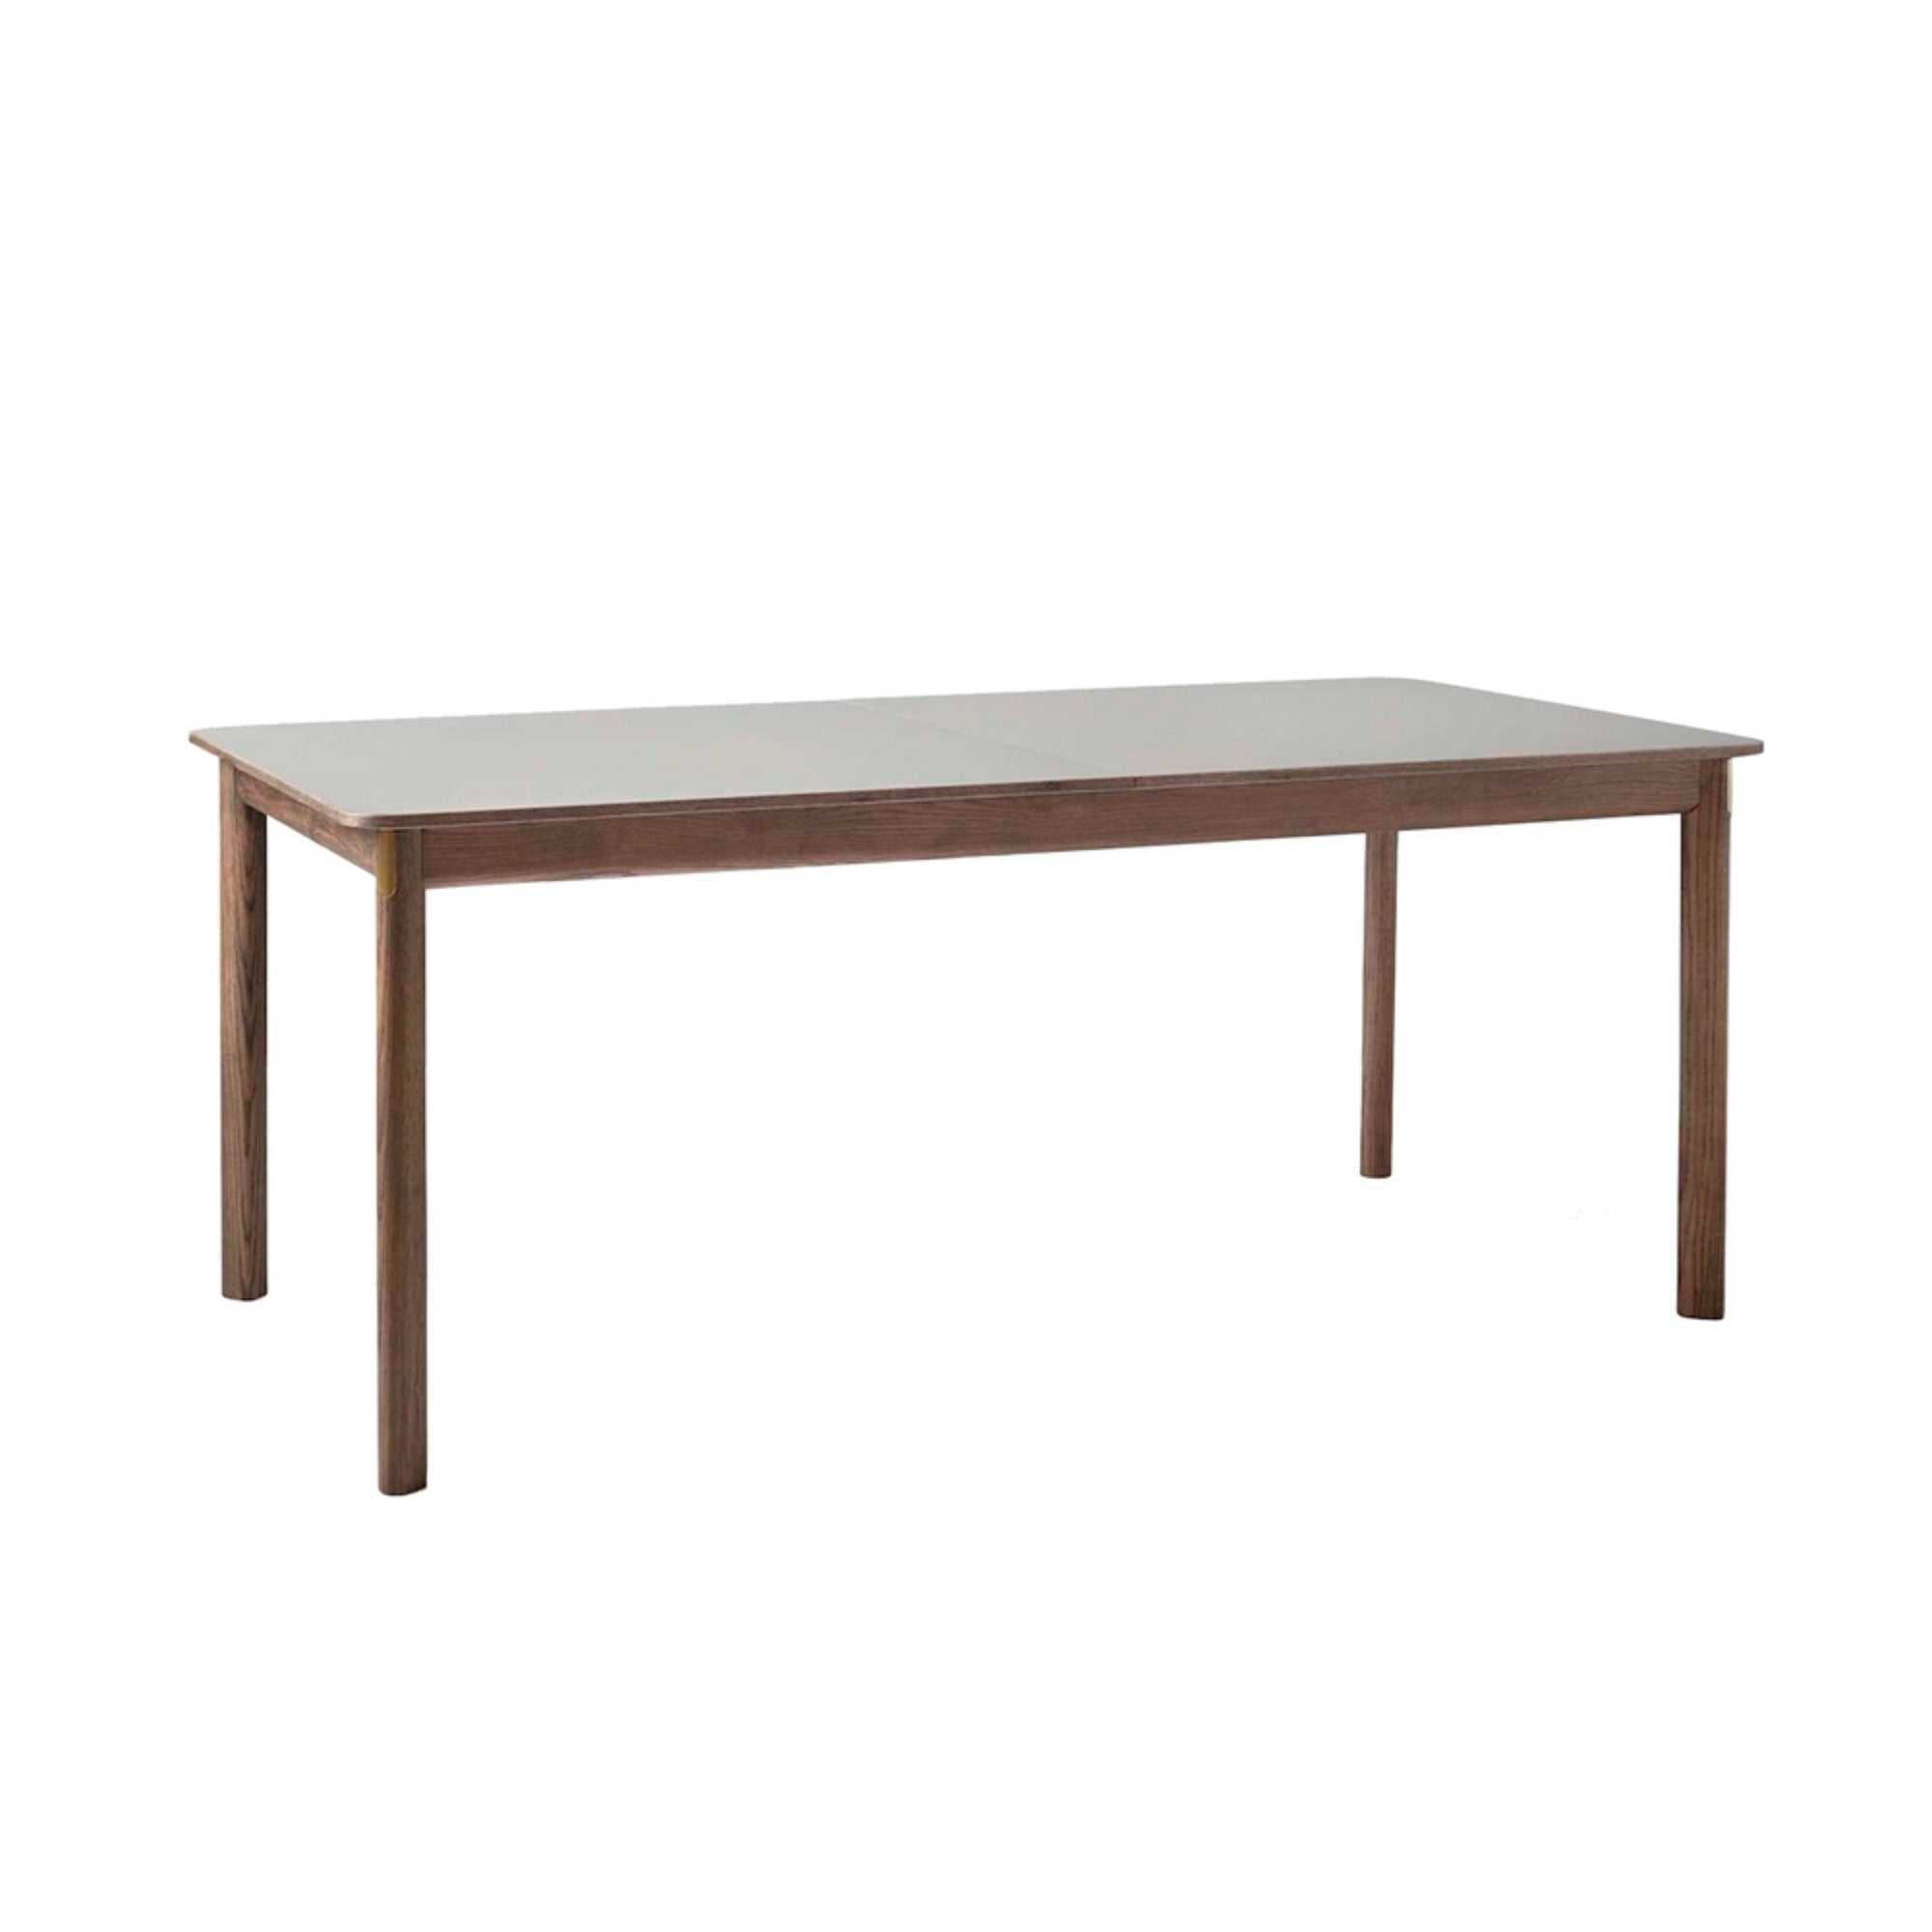 &Tradition Patch HW1 extendable table, smoked oak